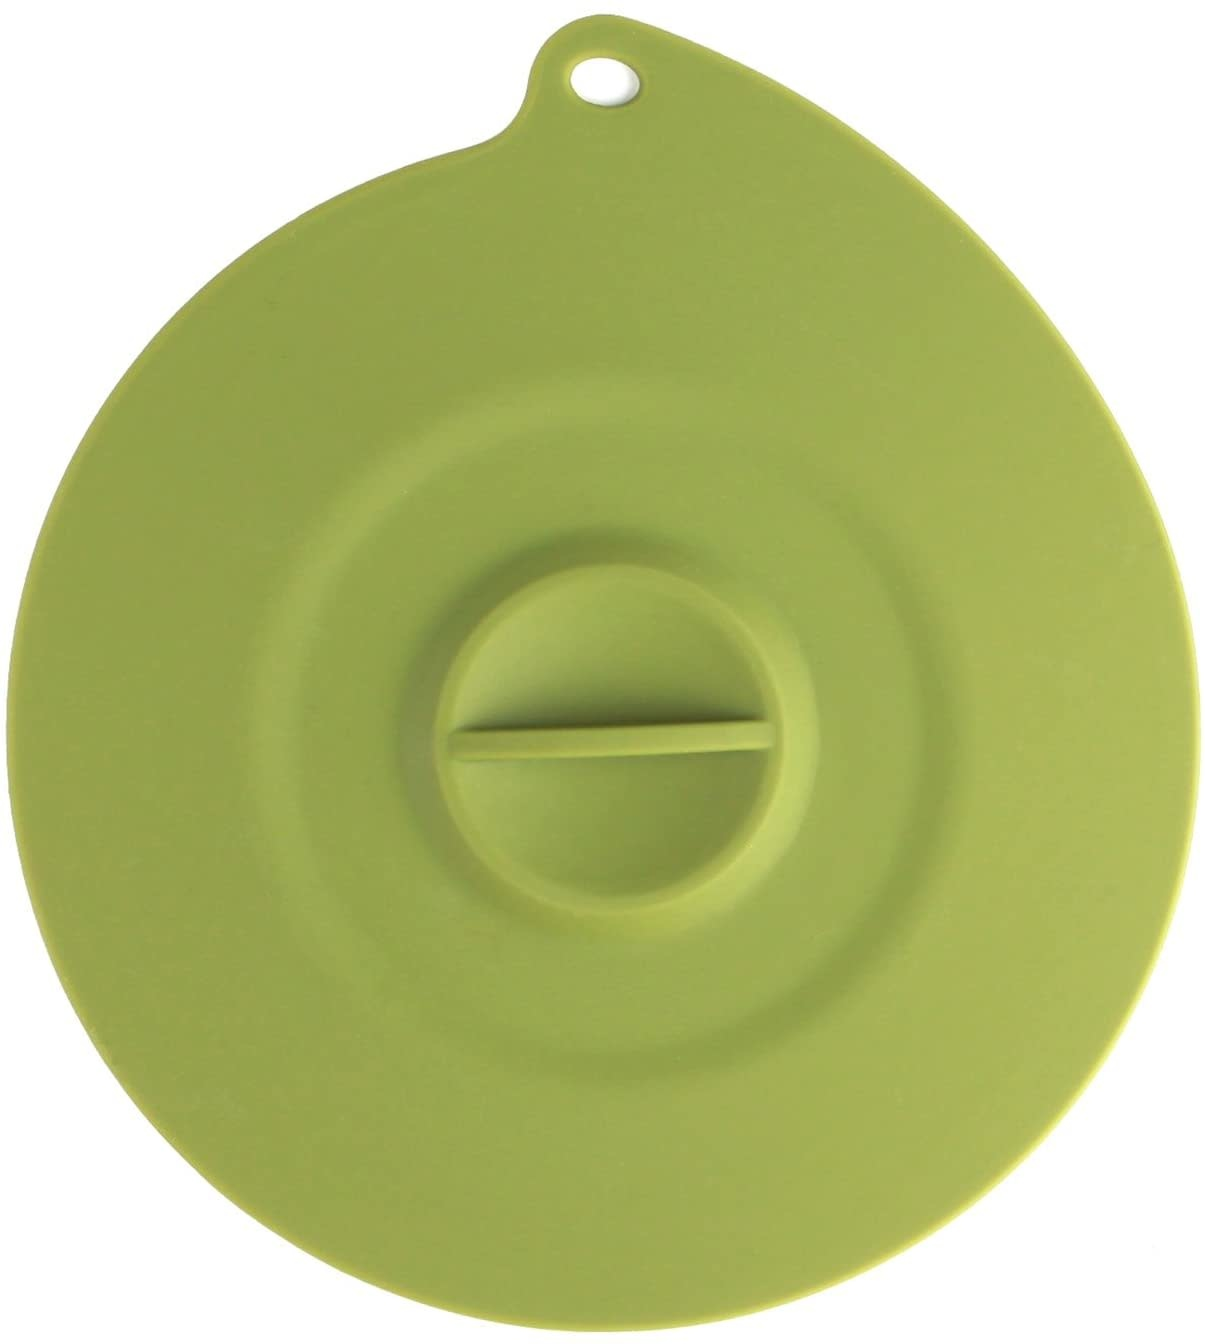 Dexas Dexas Silicone Suction Lid Green